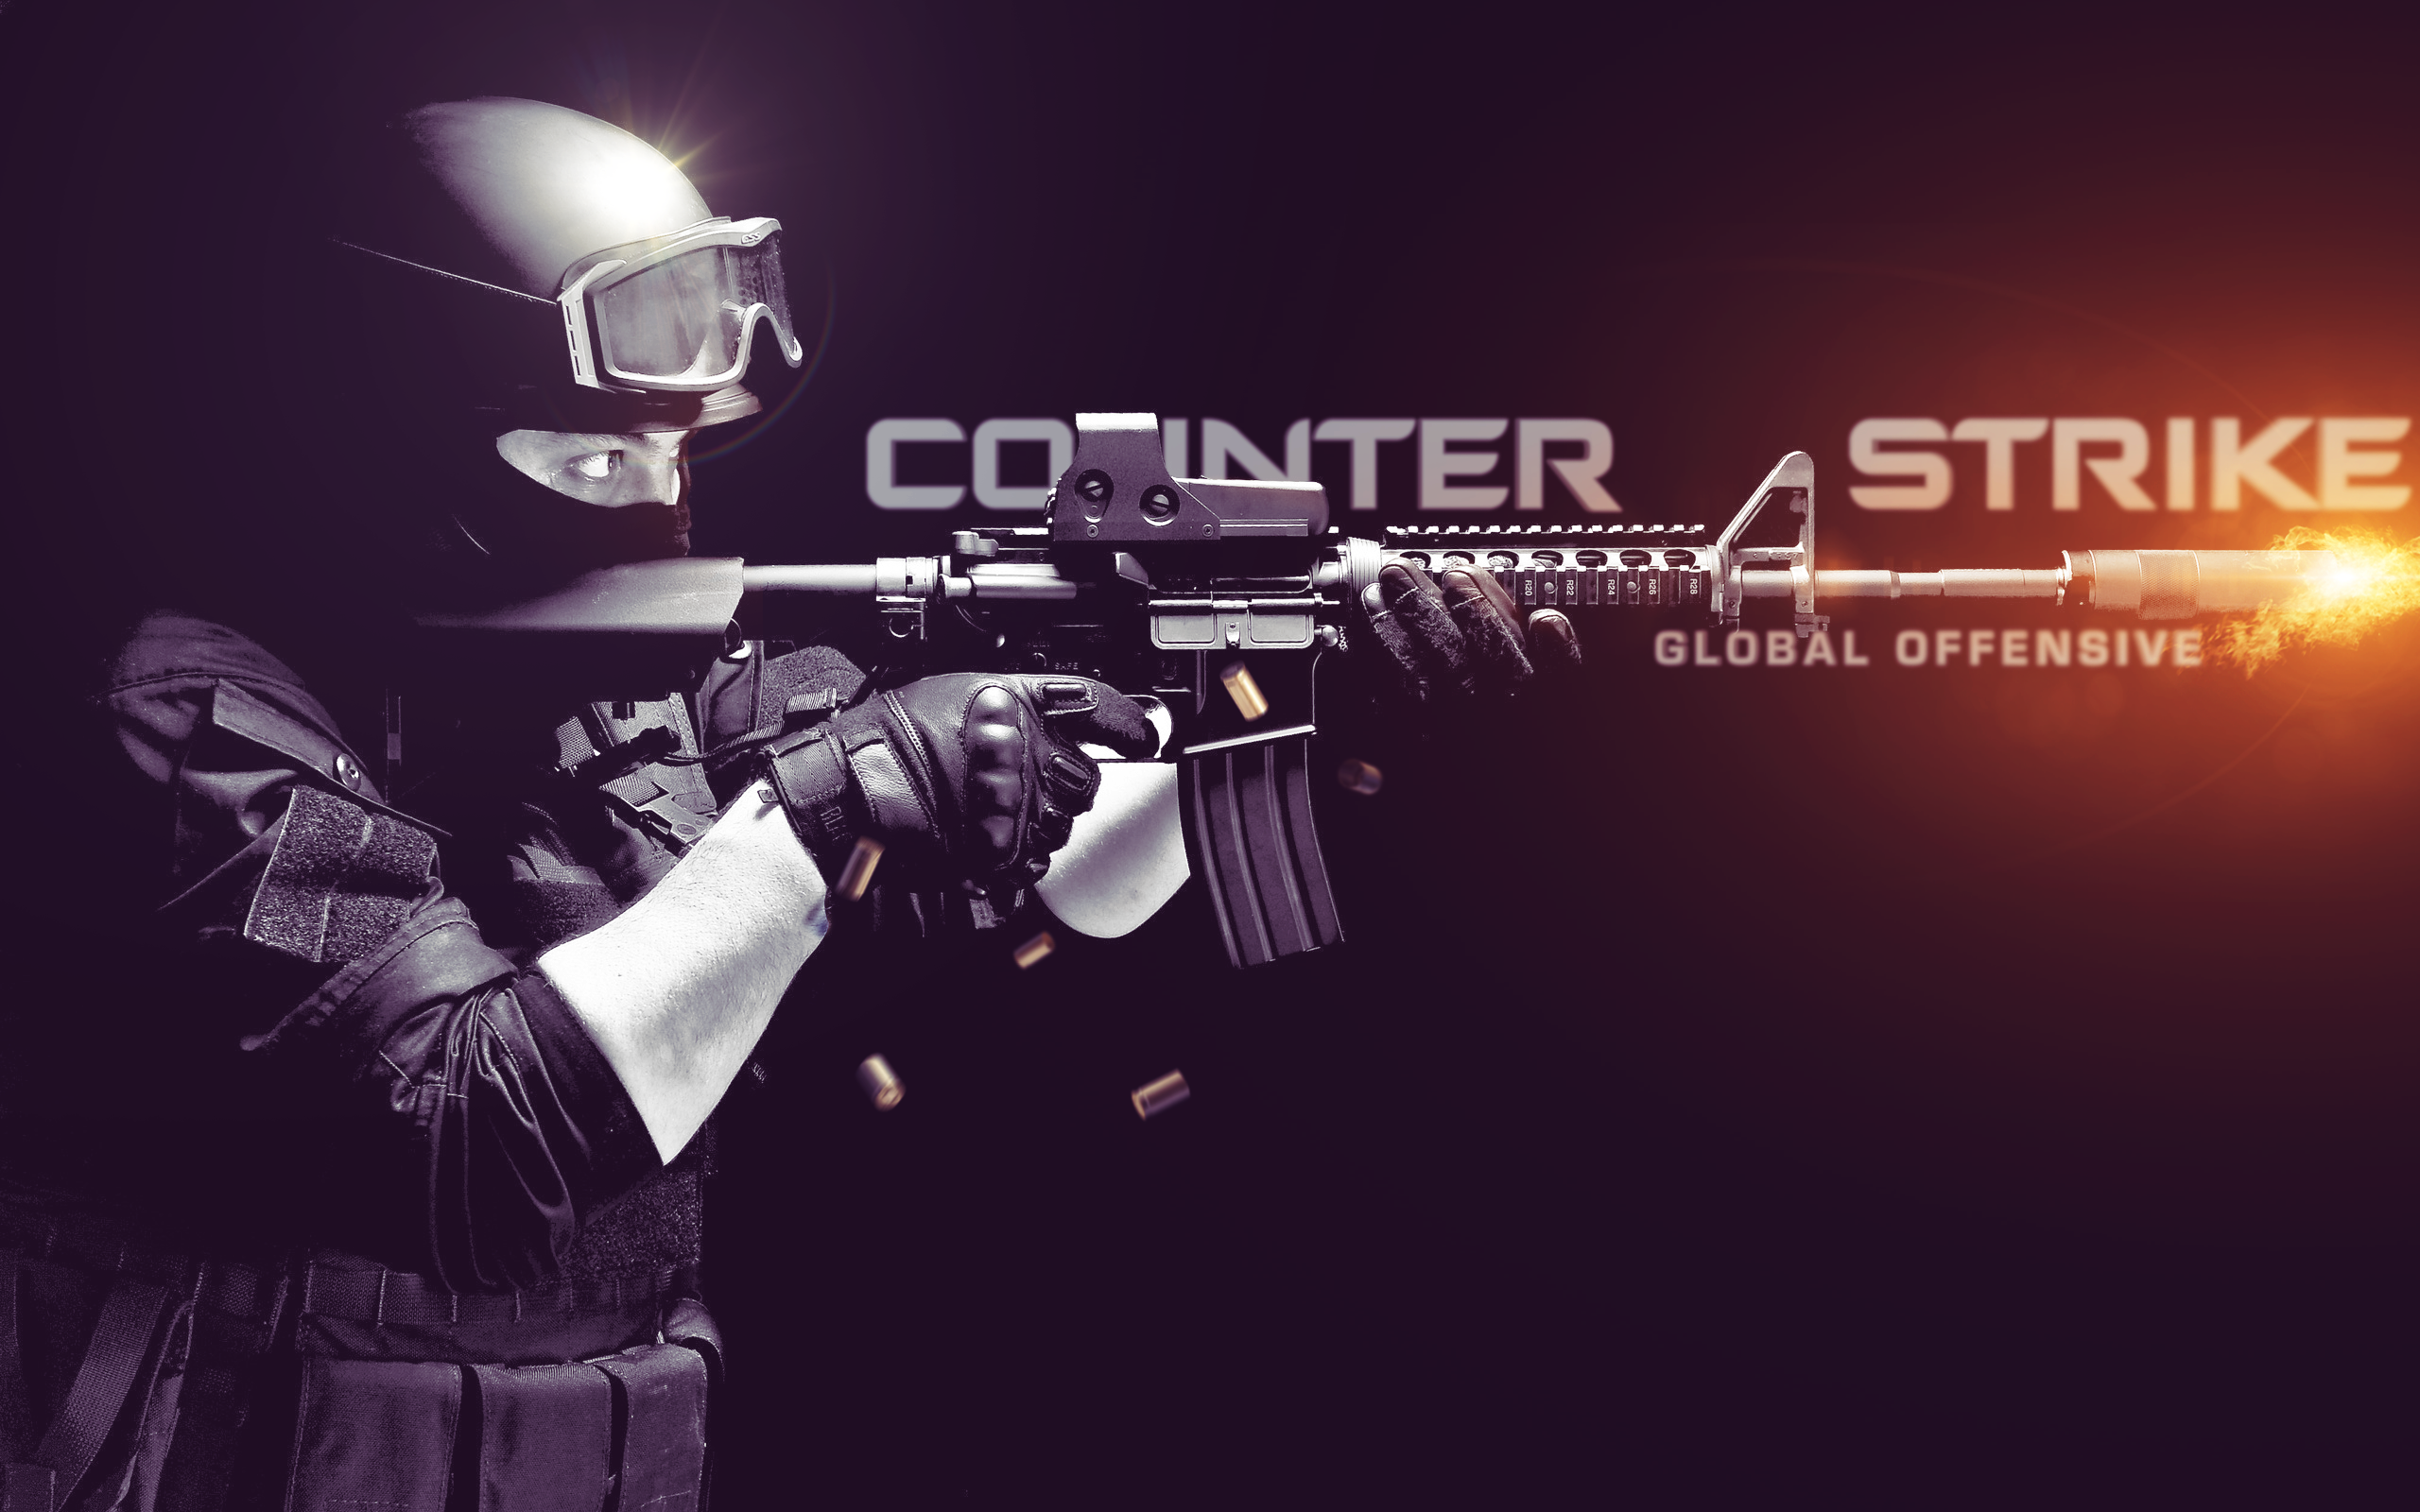 Counter Strike Desktop Wallpapers › 40072011 Counter Strike Images